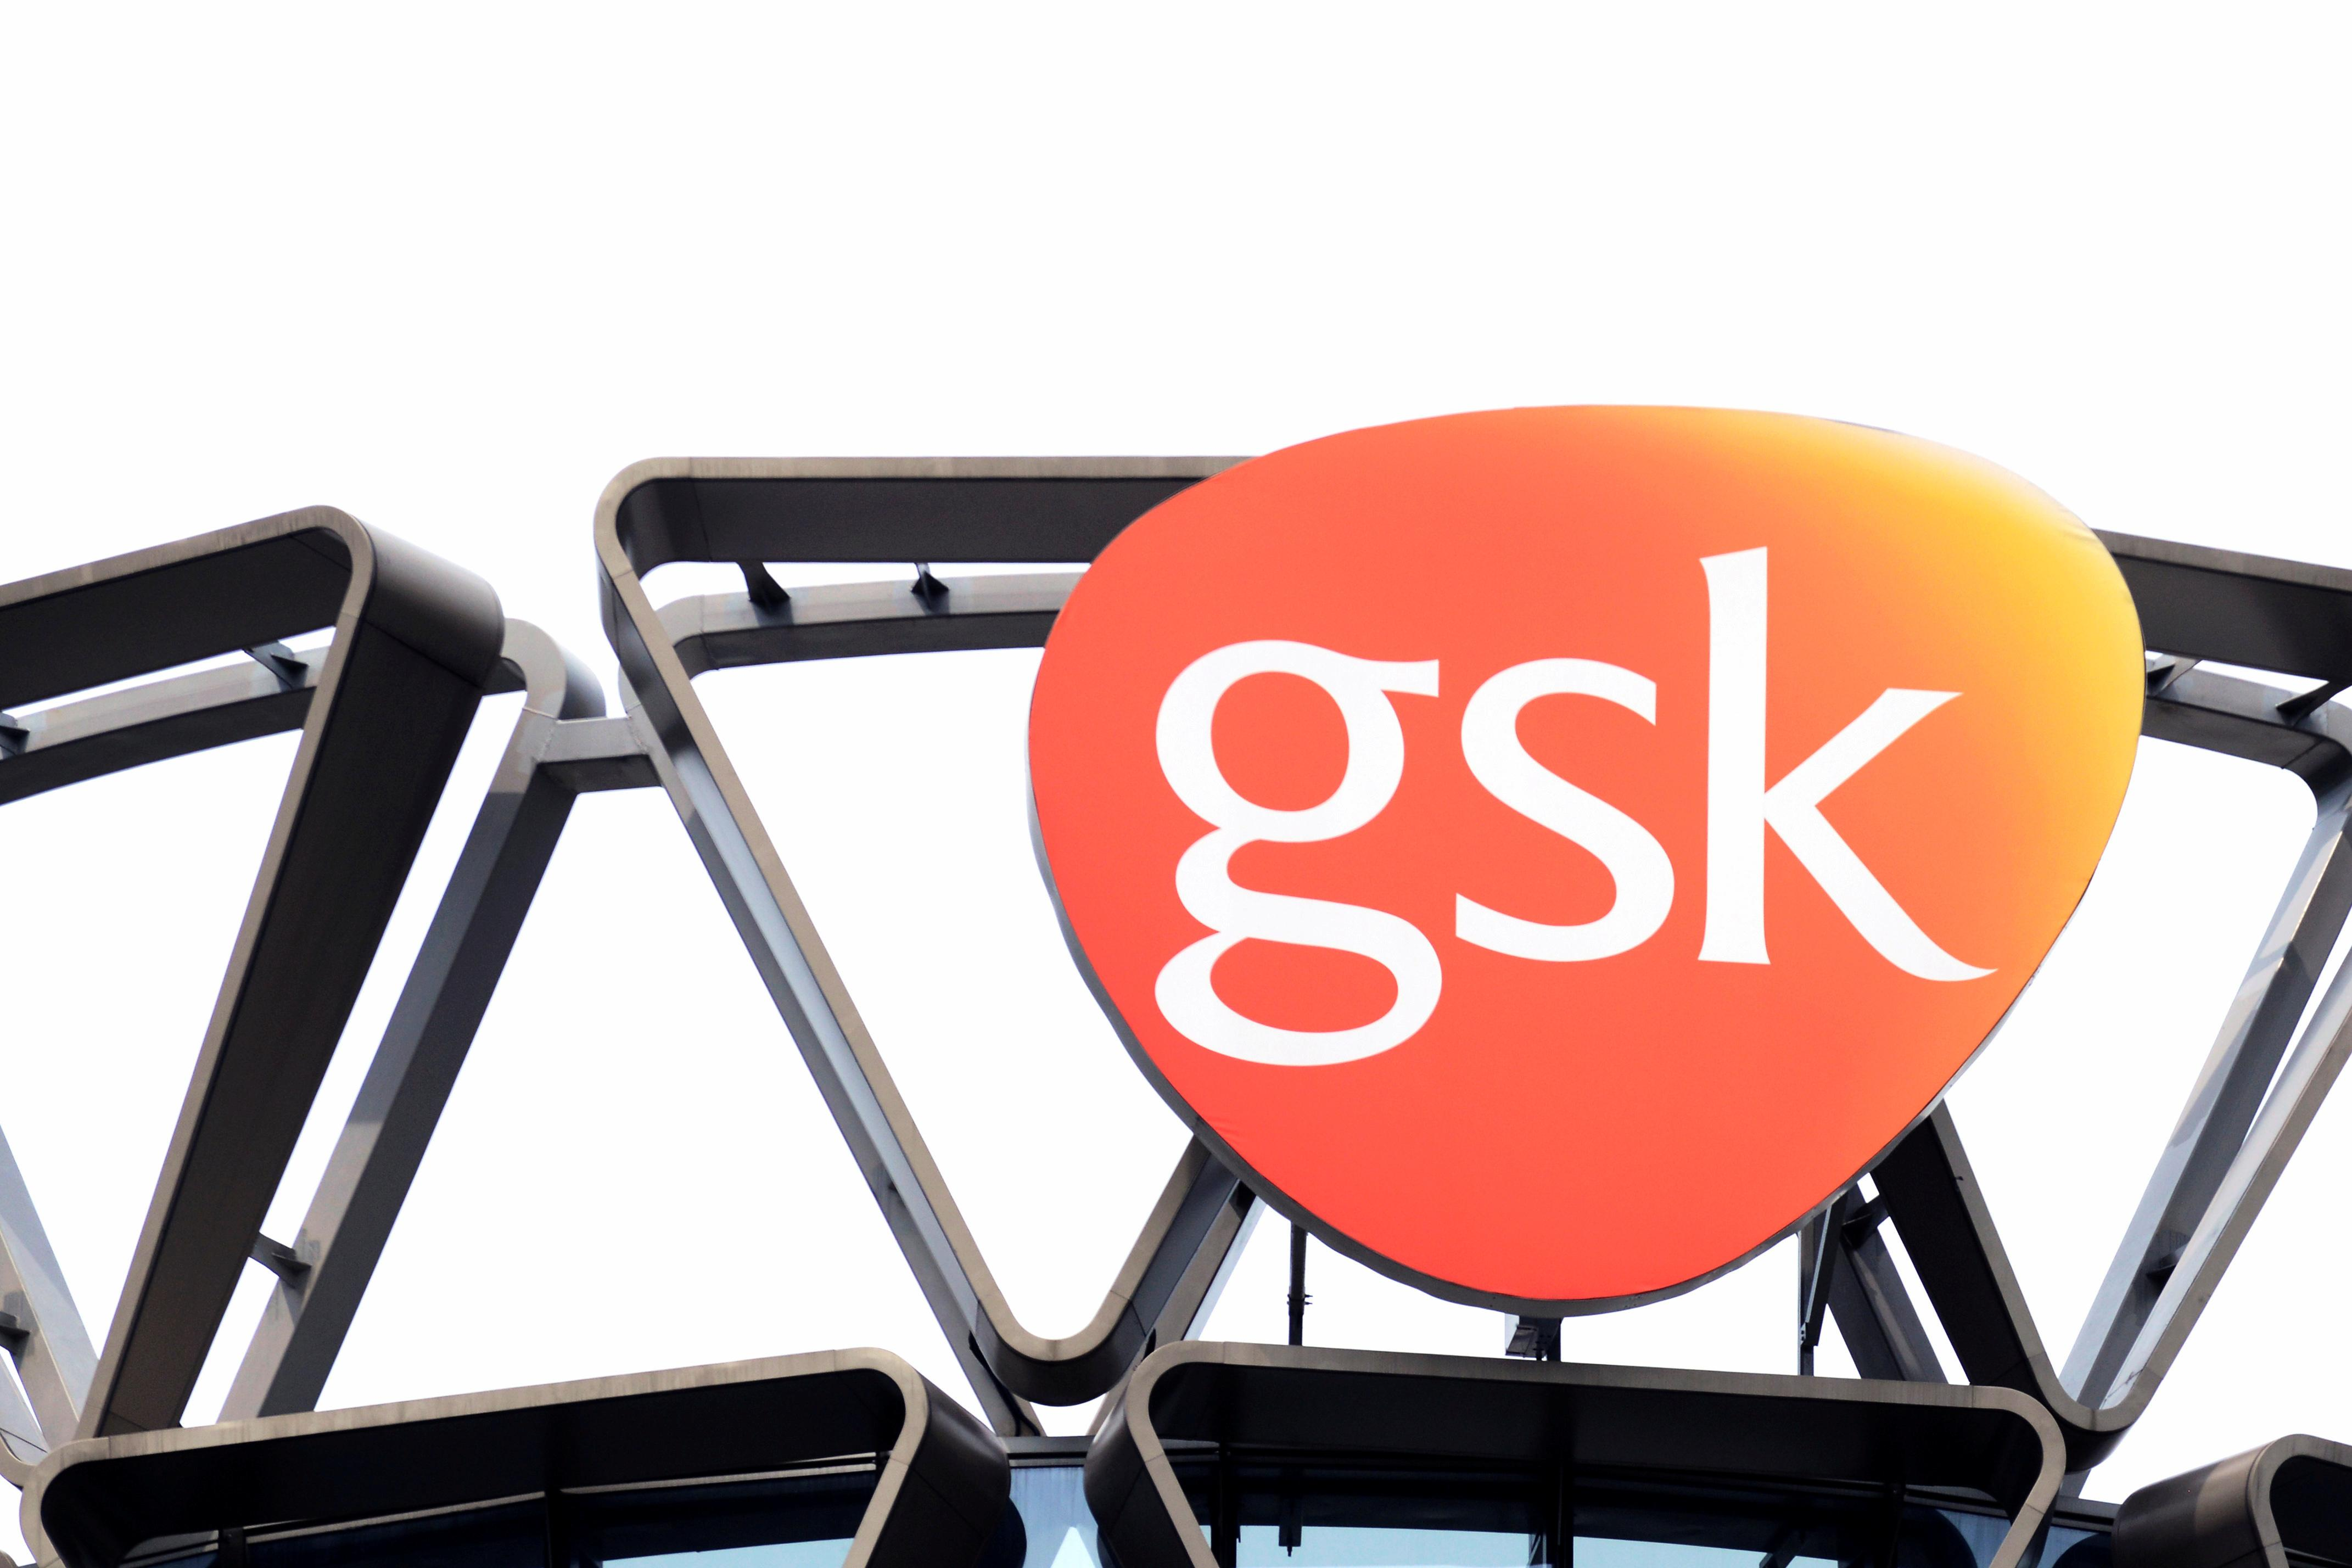 Results of GSK and AstraZeneca trials may widen ovarian cancer drug...